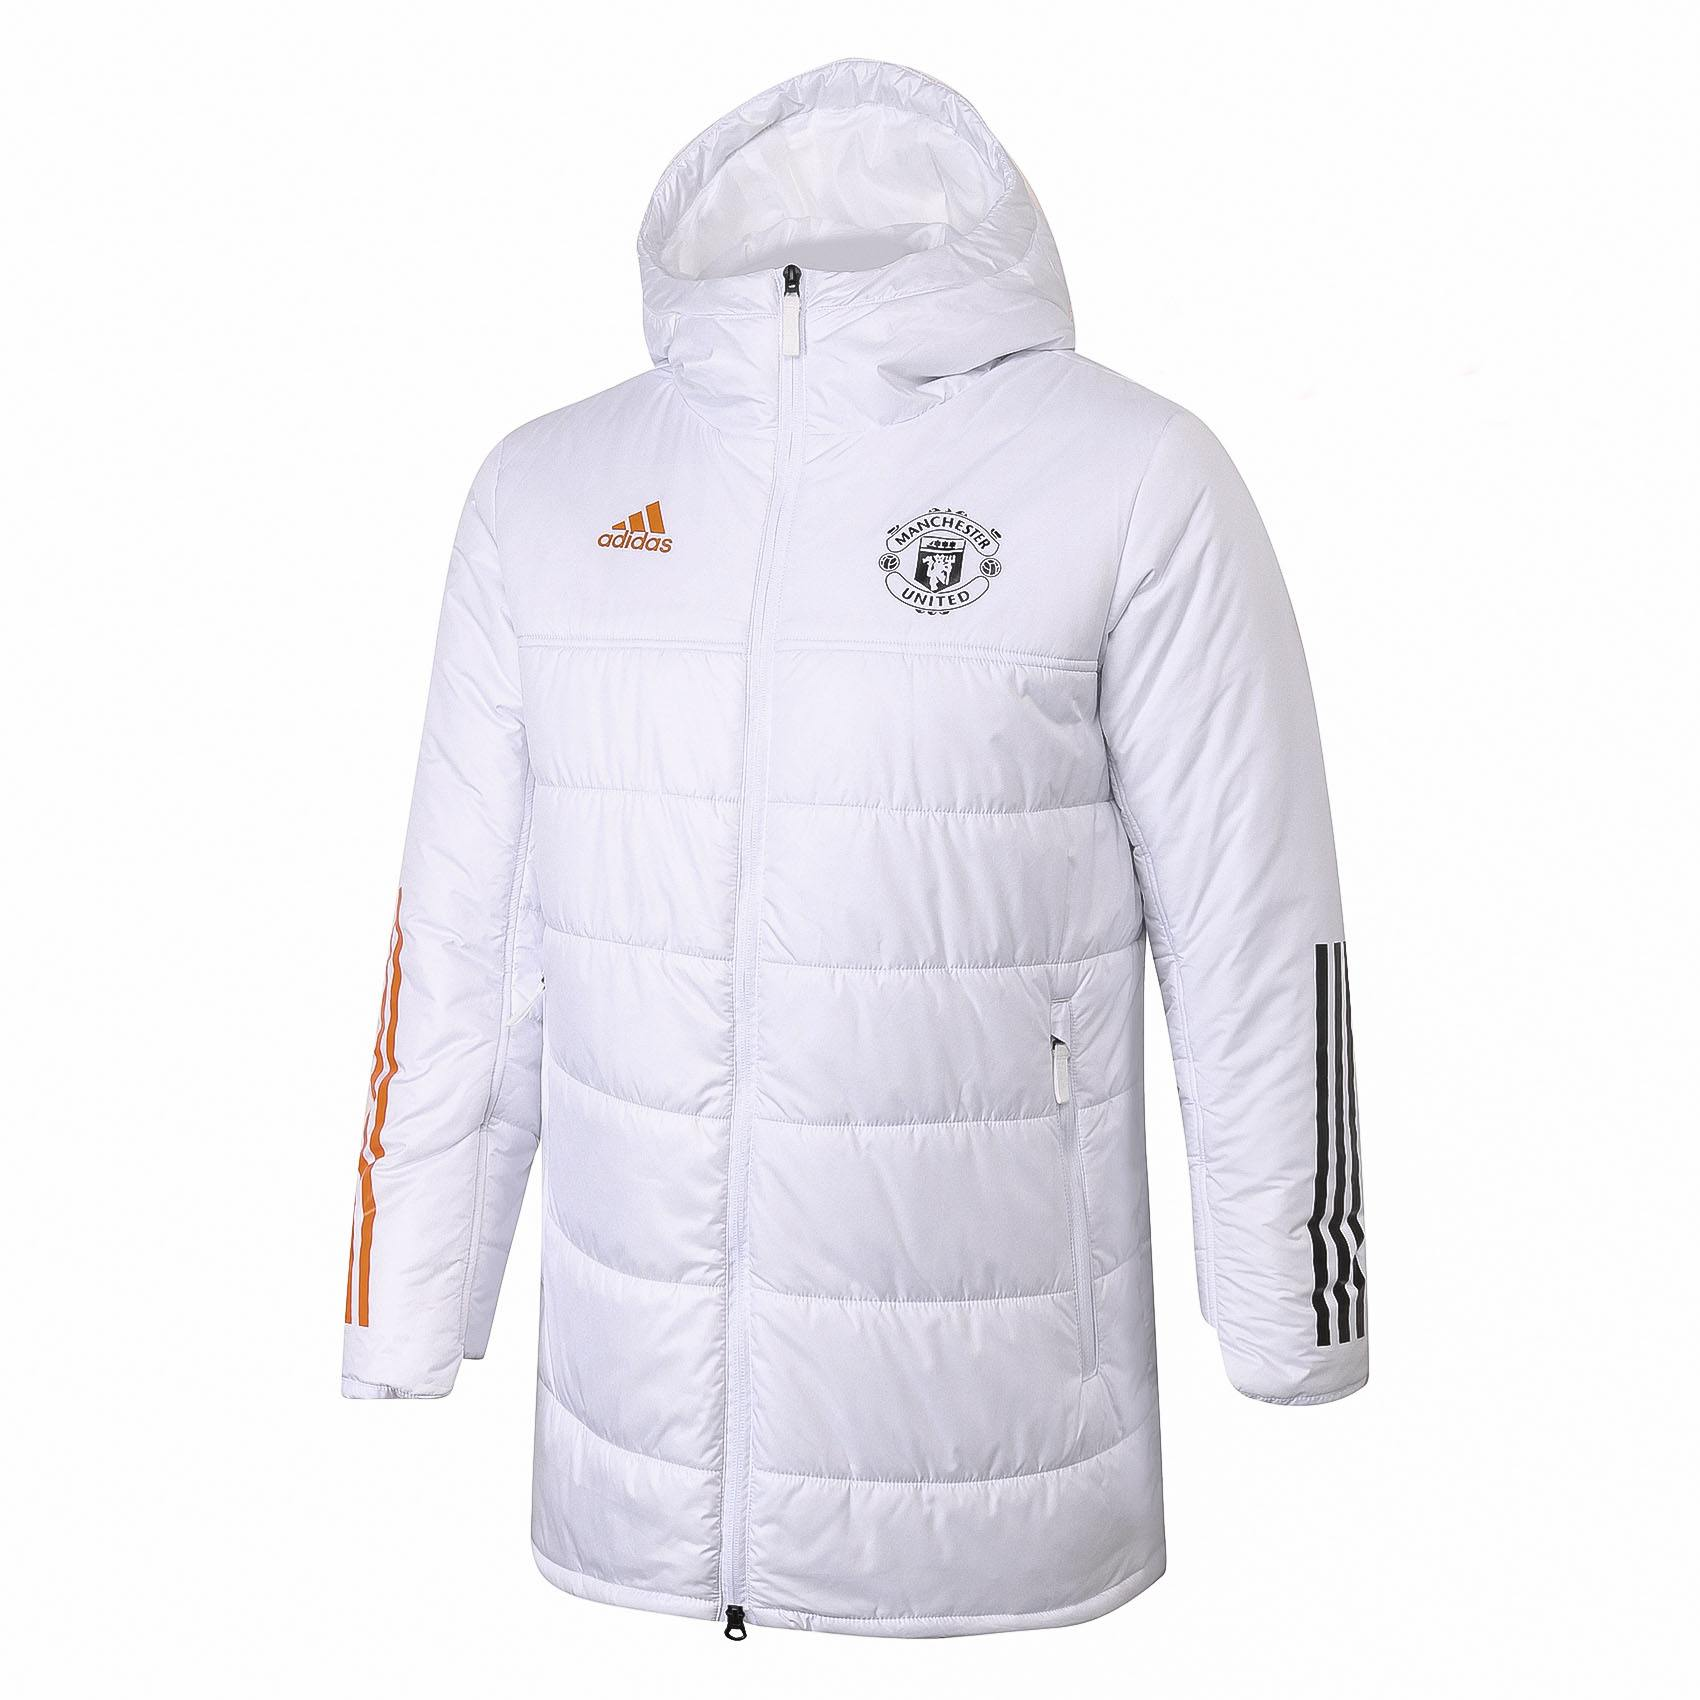 Doudoune Manchester United Adidas Blanche 2021 freeshipping - Foot Online